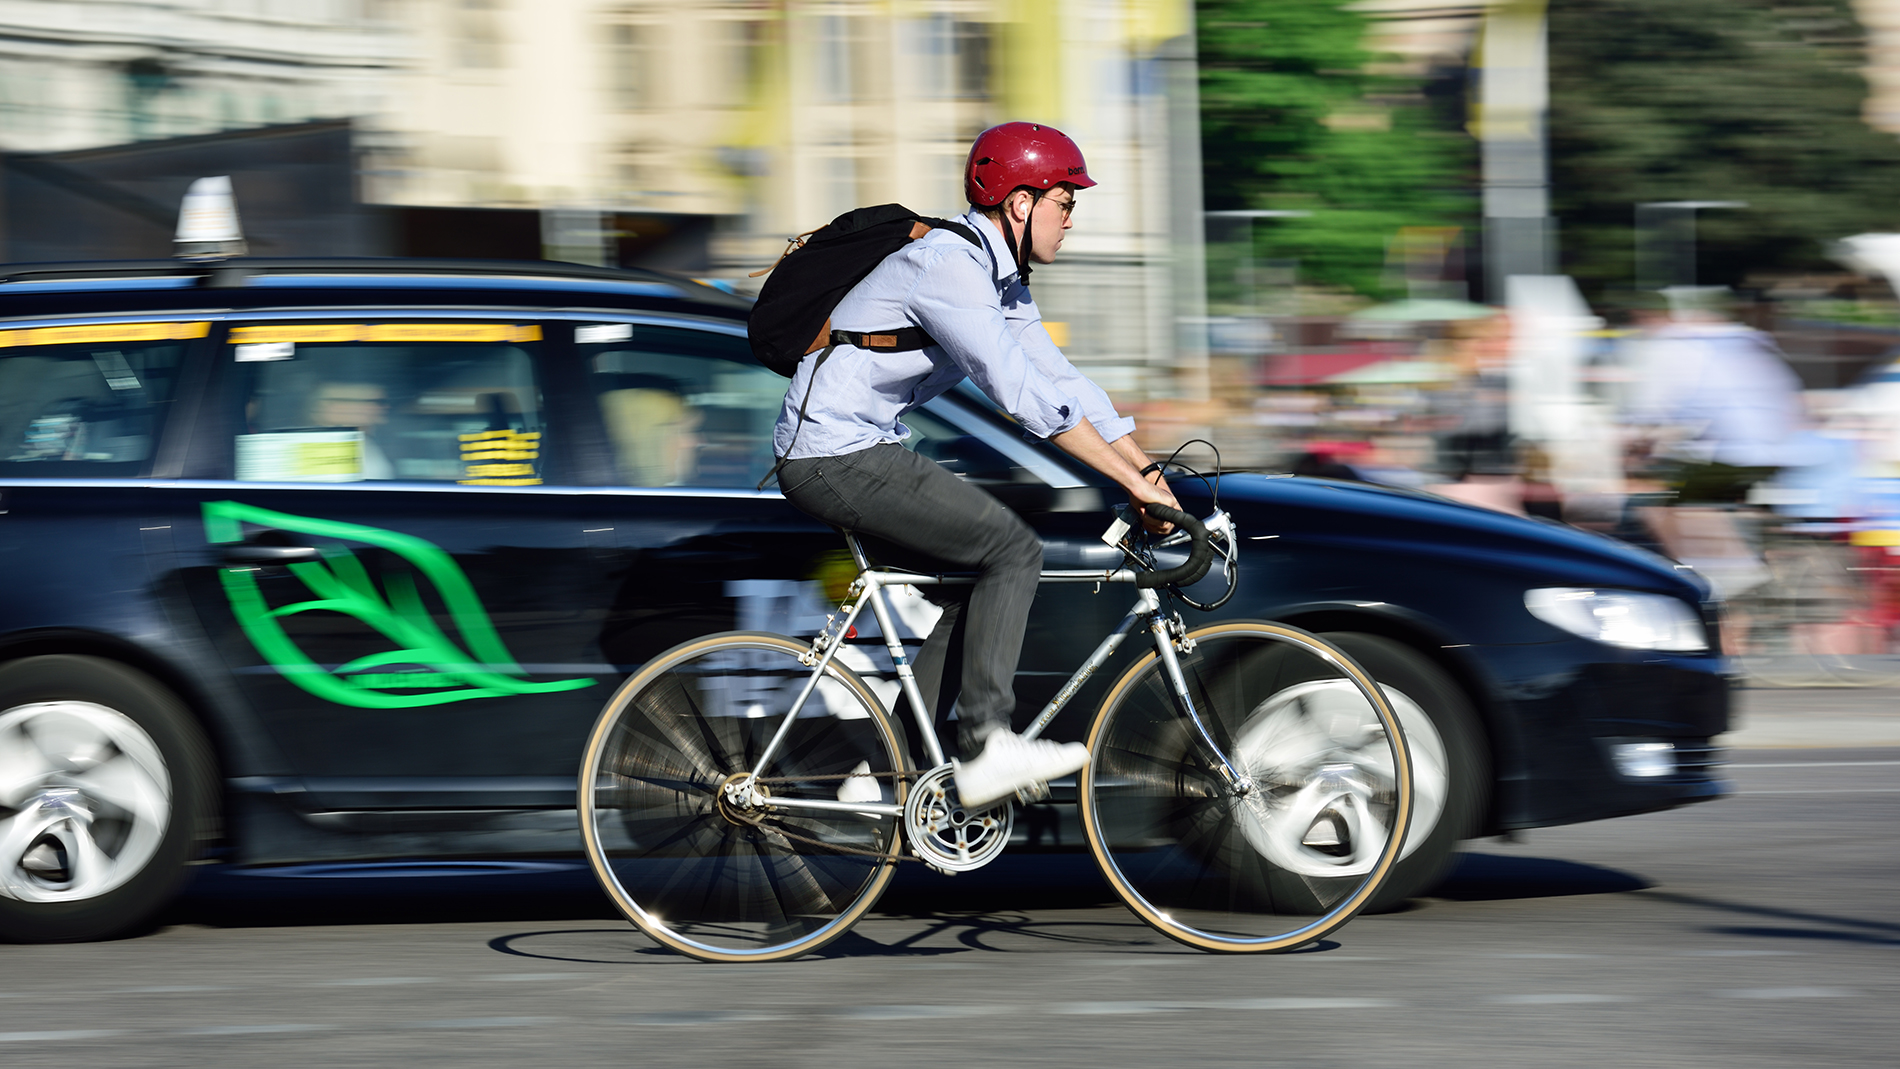 People communicate with all their senses in traffic. Silent electric cars therefore pose a potential danger on the road, particularly to cyclists and pedestrians (Photo: iStock)